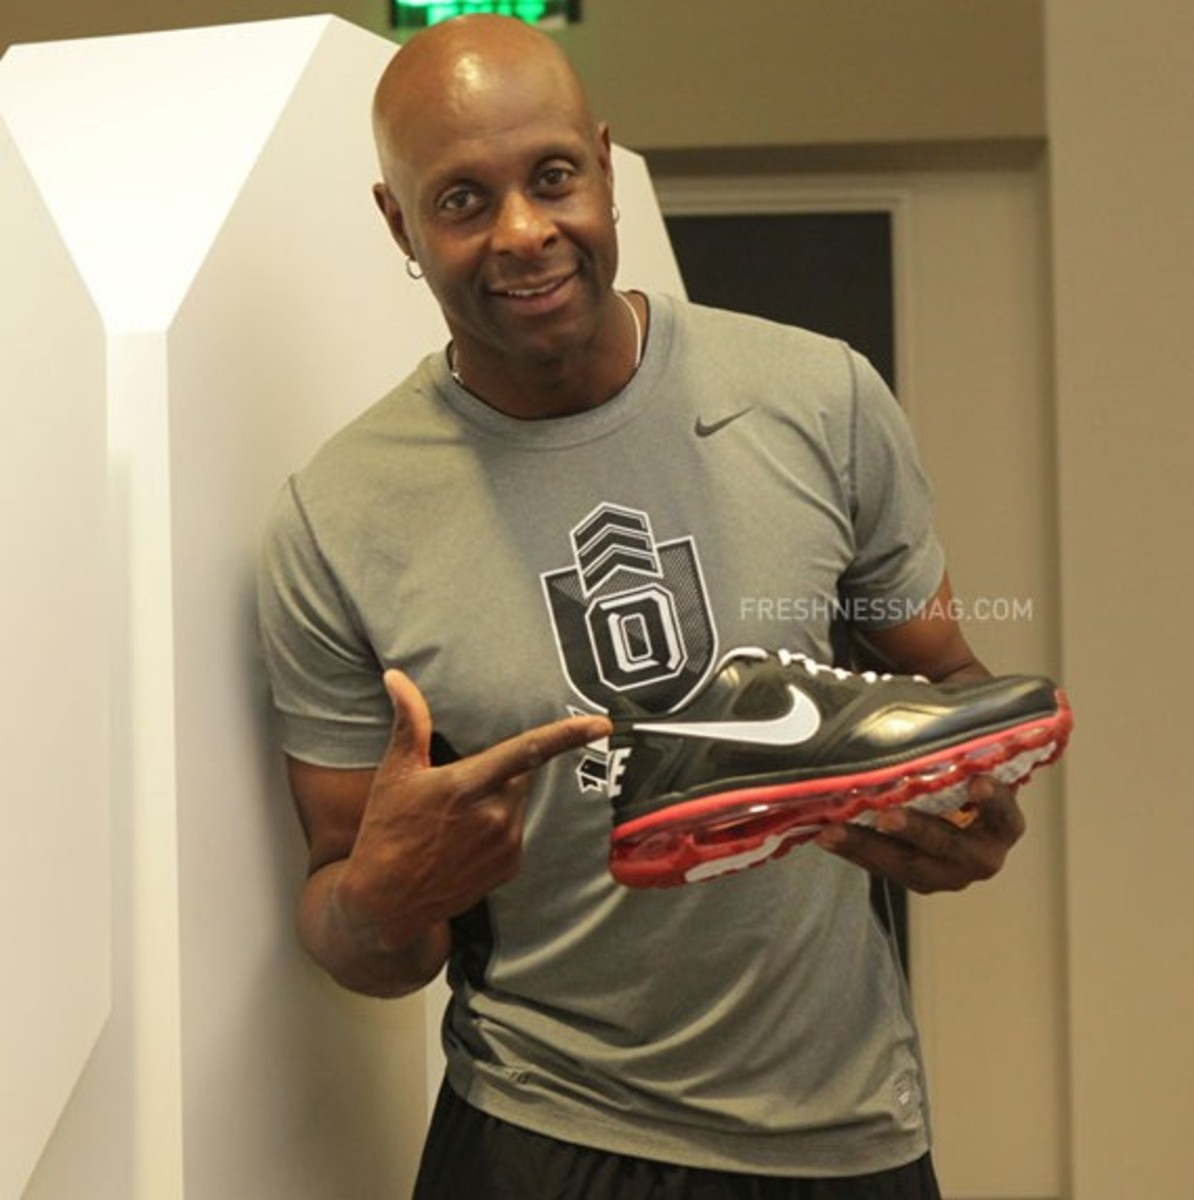 nike-trainer-1.3-max-jerry-rice-pe-07